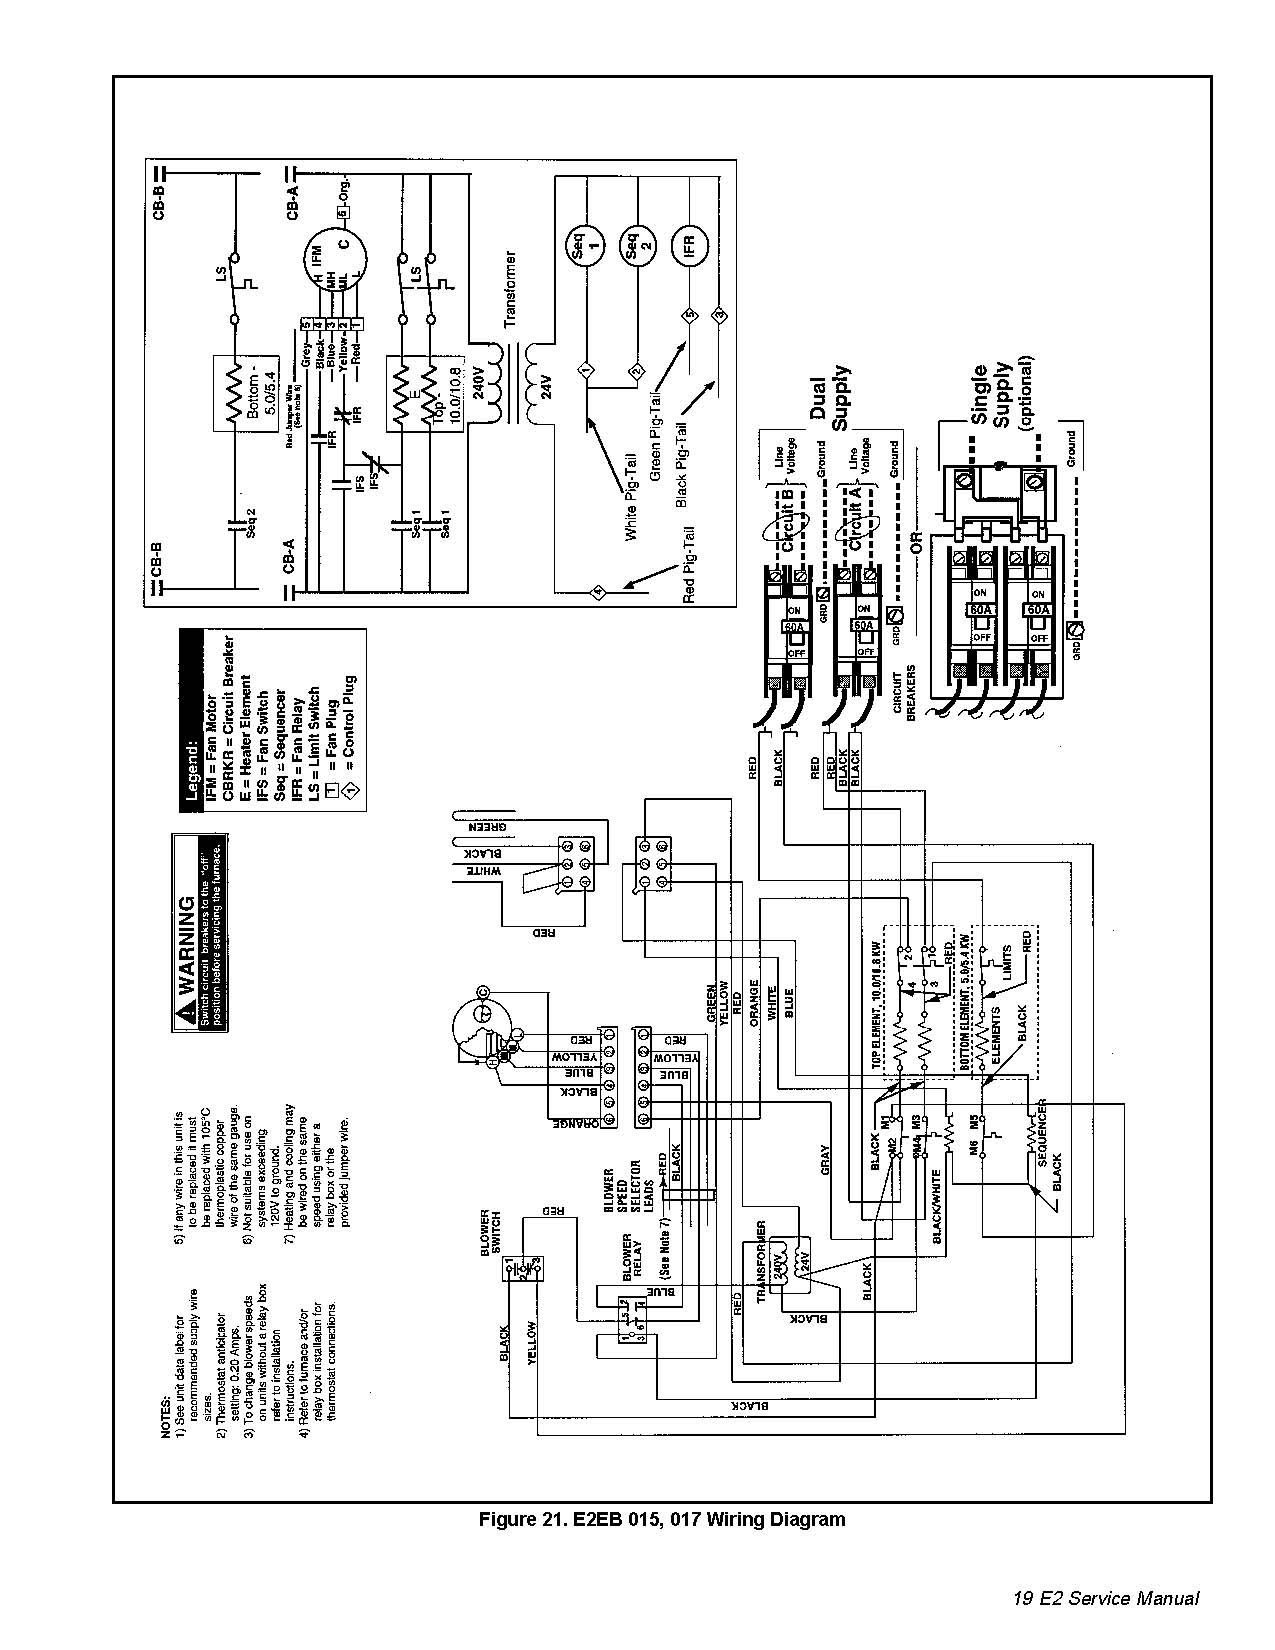 Intertherm Furnace Wiring Diagram Blue Wire